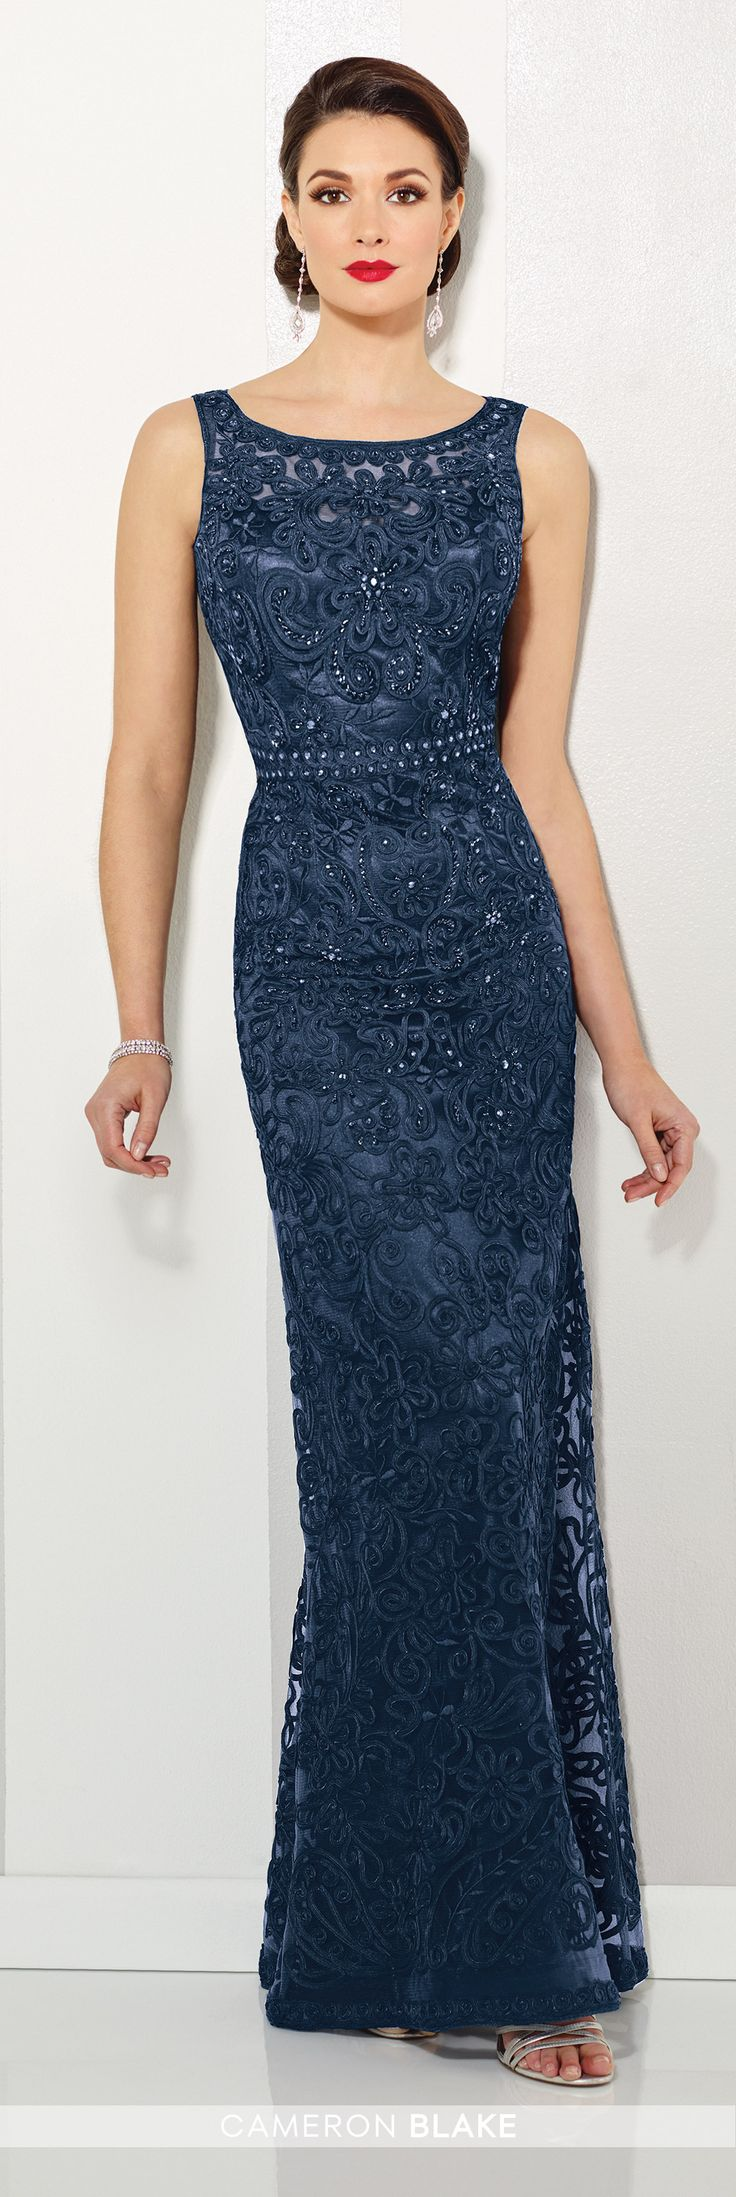 Cameron Blake - 115604 -Sleeveless ribbon on tulle slim A-line gown with illusion curved bateau neckline and illusion back, hand-beaded high waistline, slightly flared skirt, Matching shawl included.NEW Colors: Navy Blue, PetalSizes: 4 – 20Colors: Navy Blue, Silver, Petal, Jade, Black